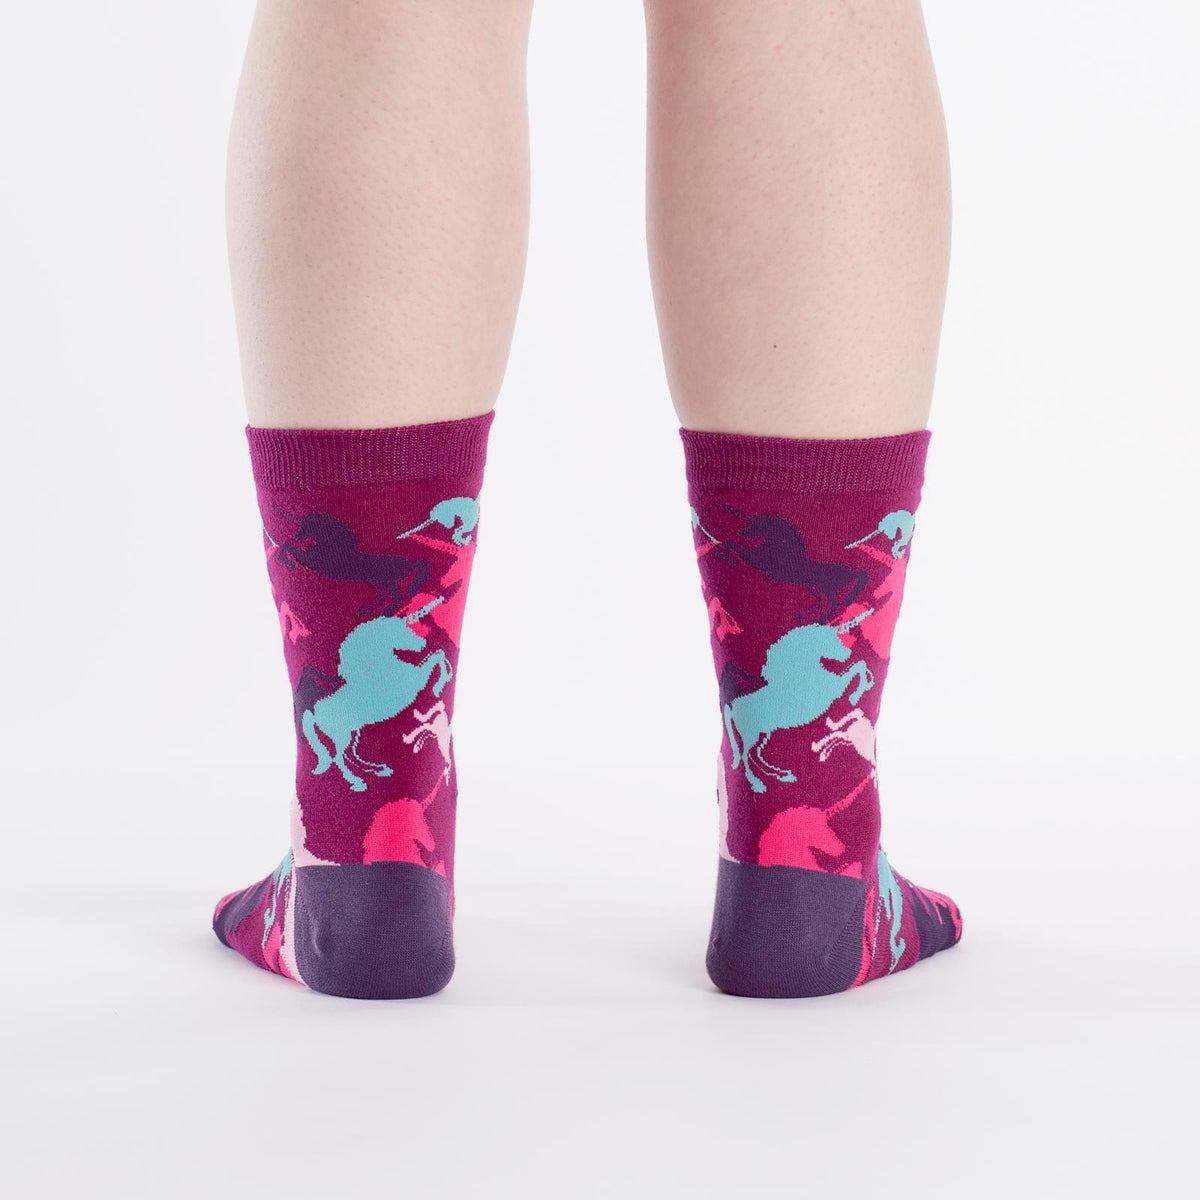 Mythical Unicorn Socks rear